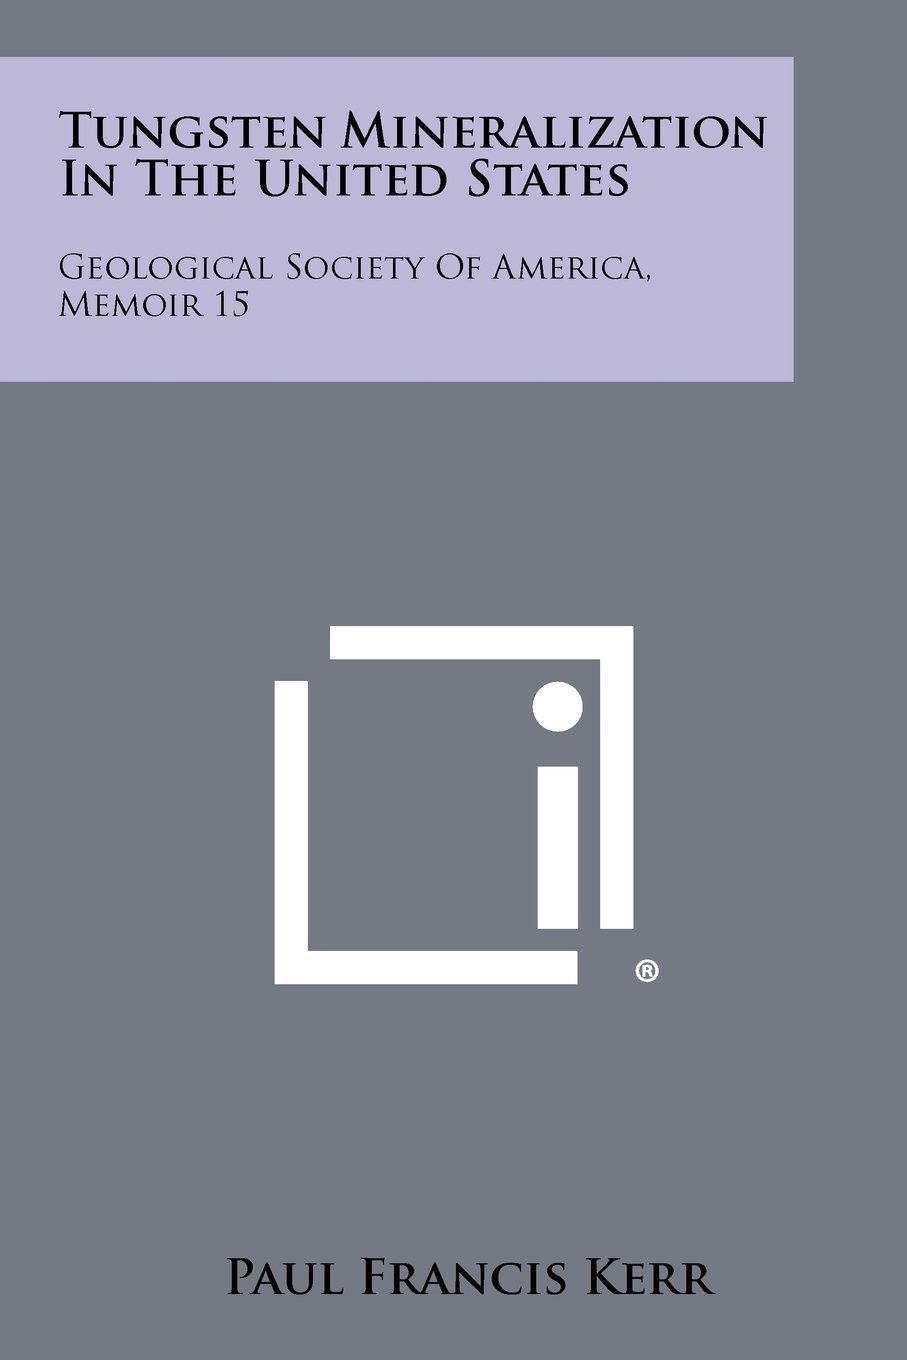 Tungsten Mineralization In The United States: Geological Society Of America, Memoir 15 PDF